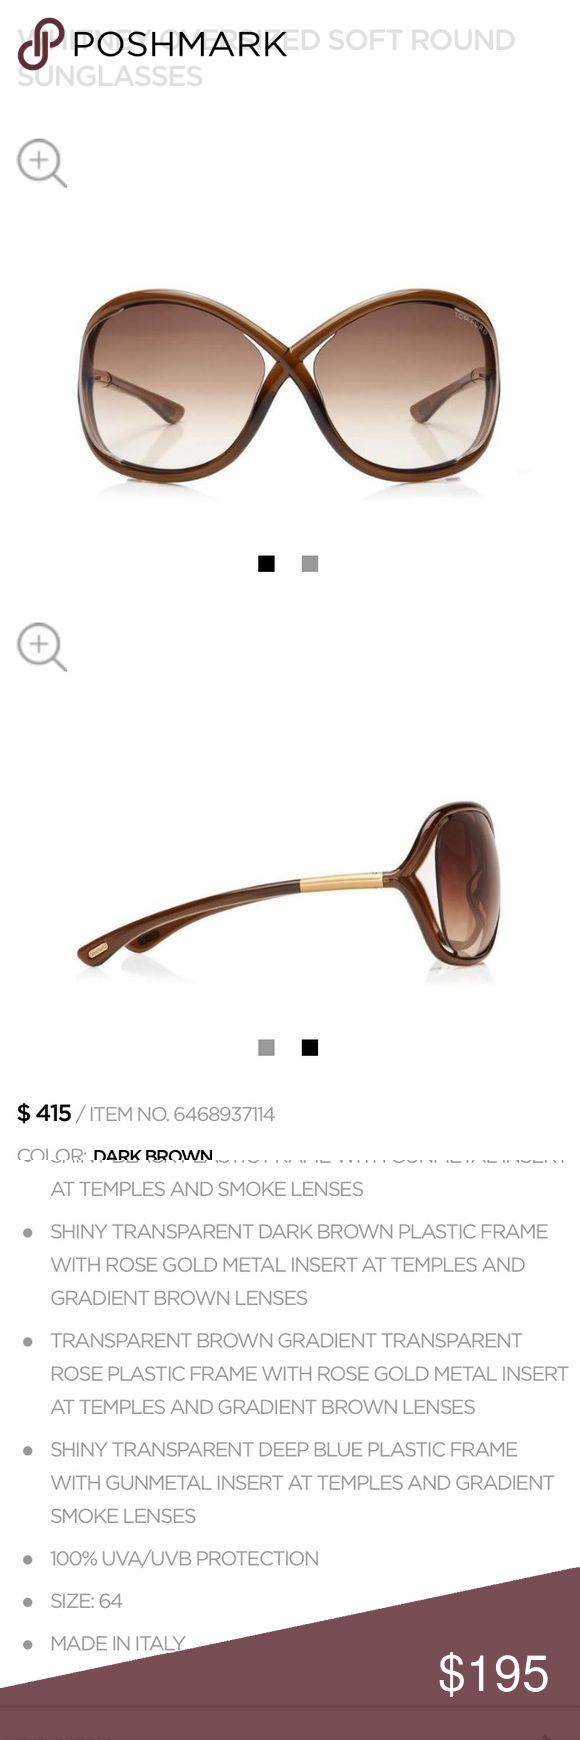 Tom Ford Whitney oversized soft round sunglasses Iconic Tom Ford Whitney sunglasses. Worn by many celebrities like Jennifer Anniston. Excellent condition, only worn a few times. Tom Ford Accessories Sunglasses